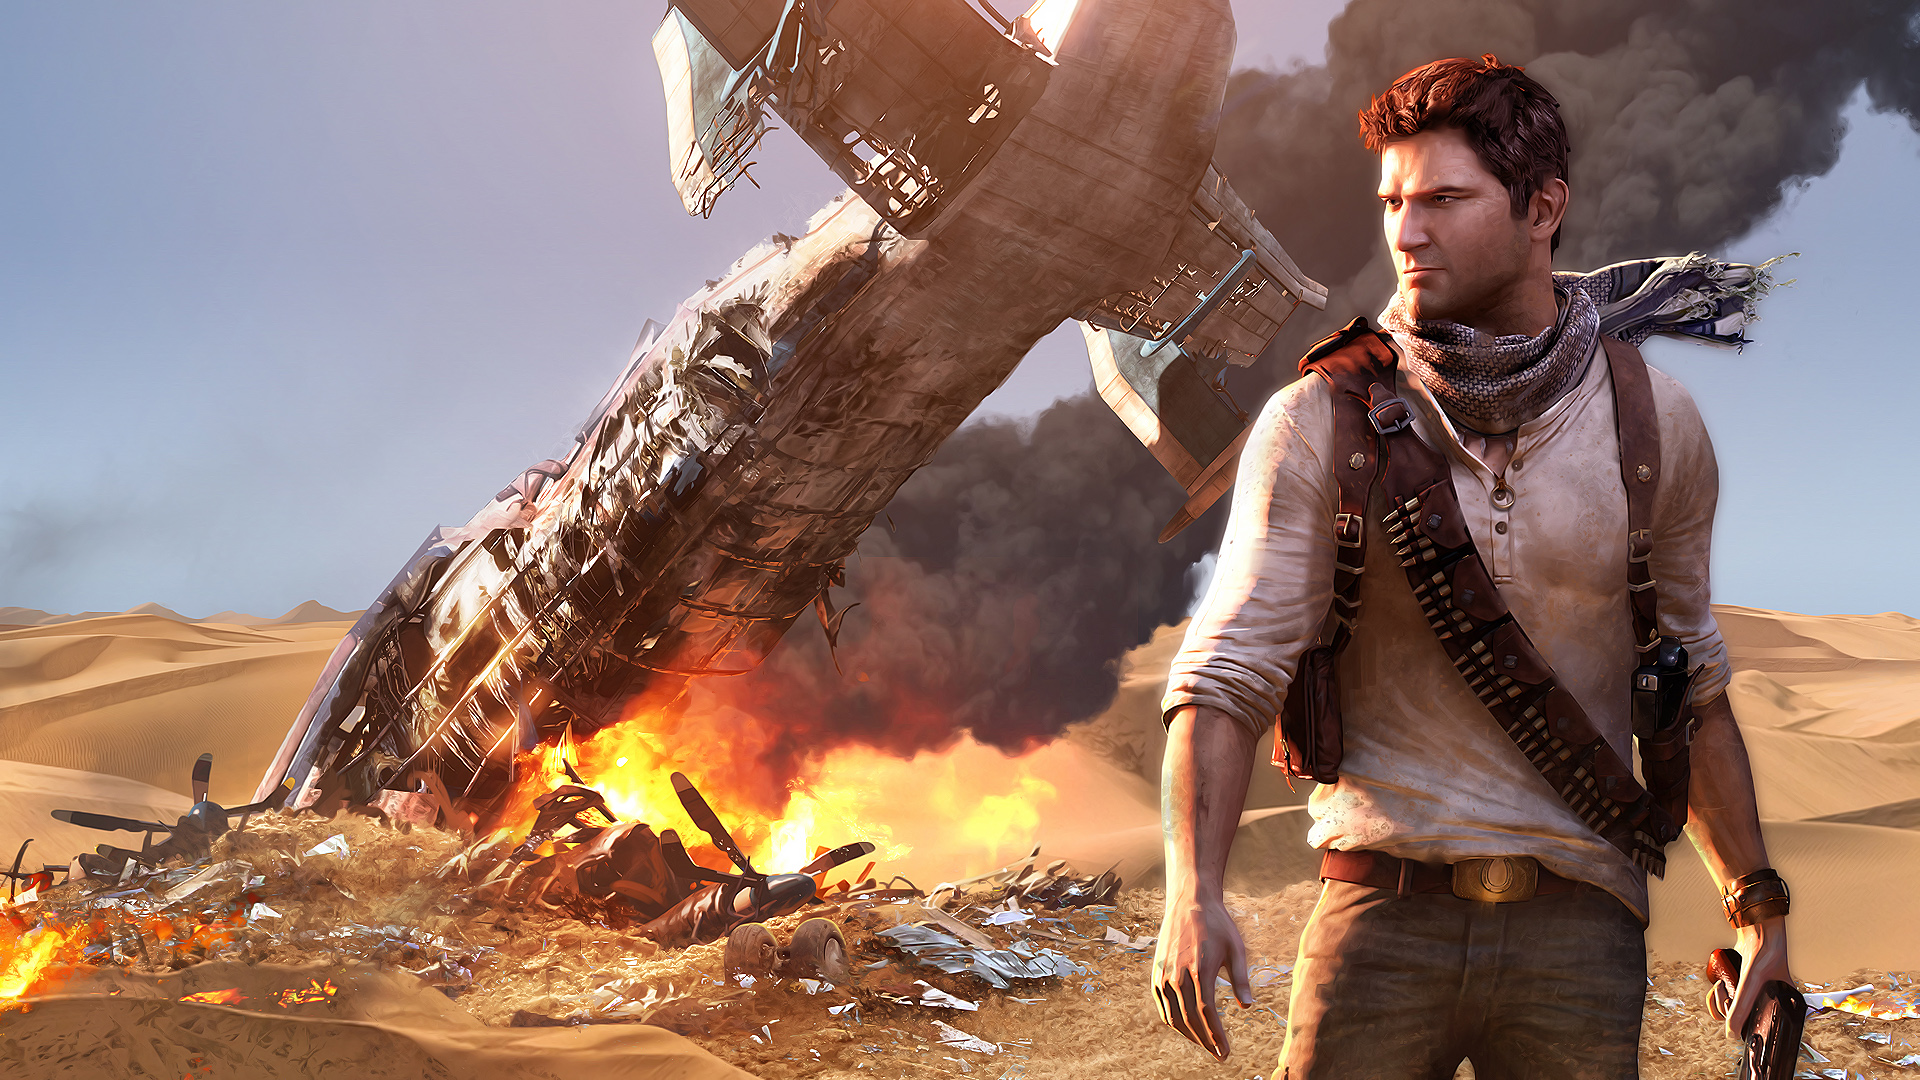 Naughty Dog Says Uncharted 4 is